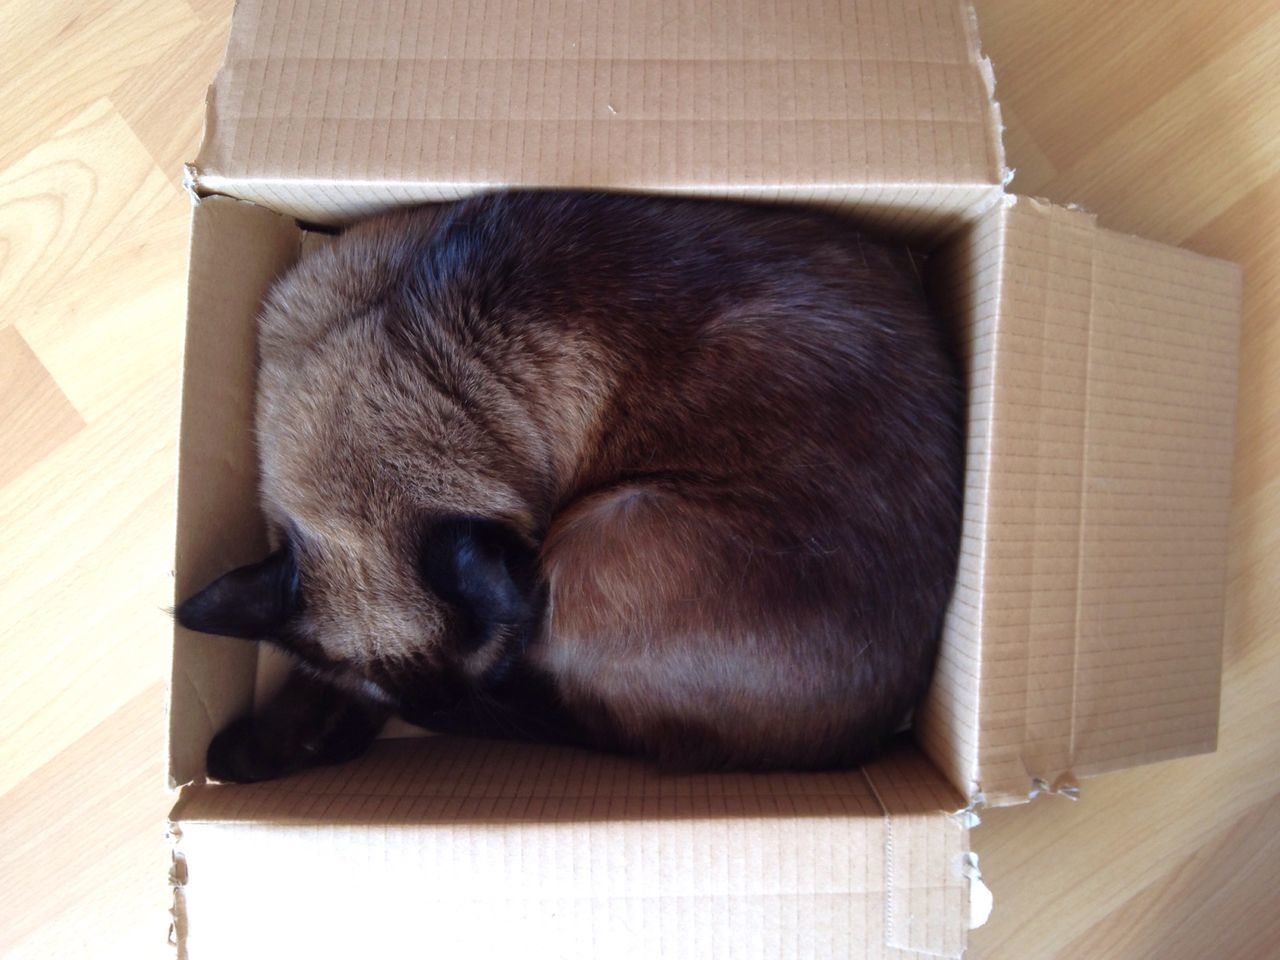 Perfect Fit Cat Cat In A Box Cardboard Box Cardboard Pets Box - Container One Animal Mammal Indoors  Domestic Cat No People Domestic Animals Lying Down Animal Themes Sleeping Curled Up